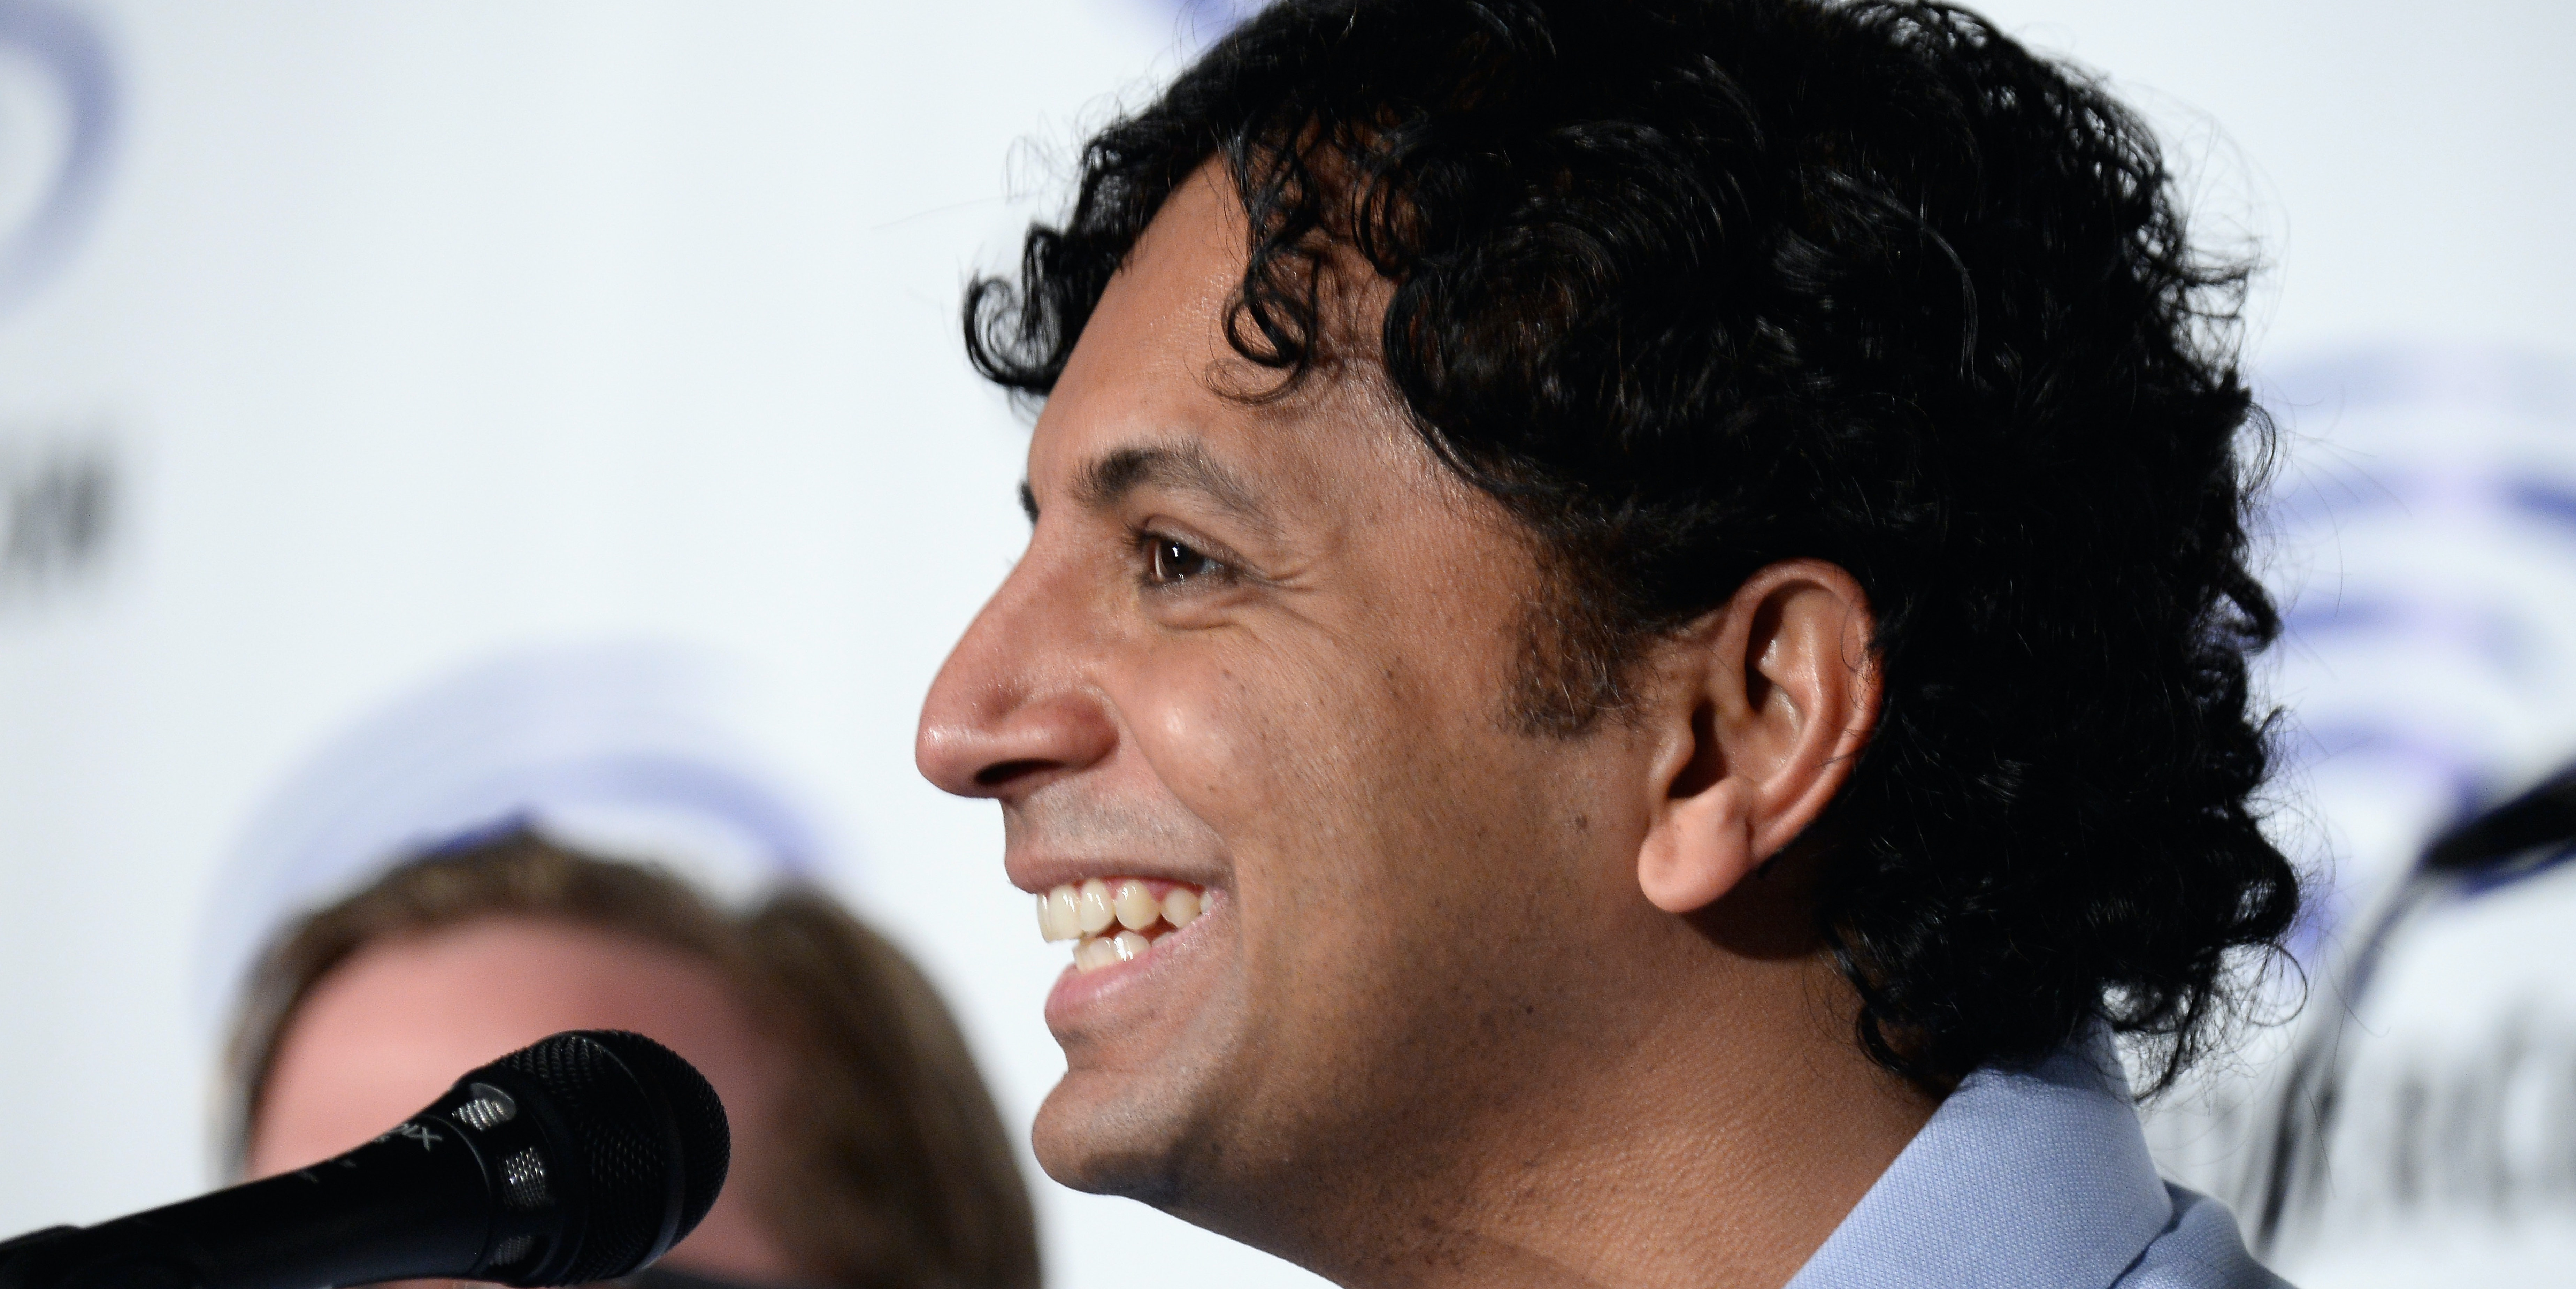 LOS ANGELES, CA - MARCH 26:  Producer/Director M. Night Shyamalan attends the Wayward Pines panel at WonderCon 2016, Day 2 at Los Angeles Convention Center on March 26, 2016 in Los Angeles, California.  (Photo by Frazer Harrison/Getty Images)